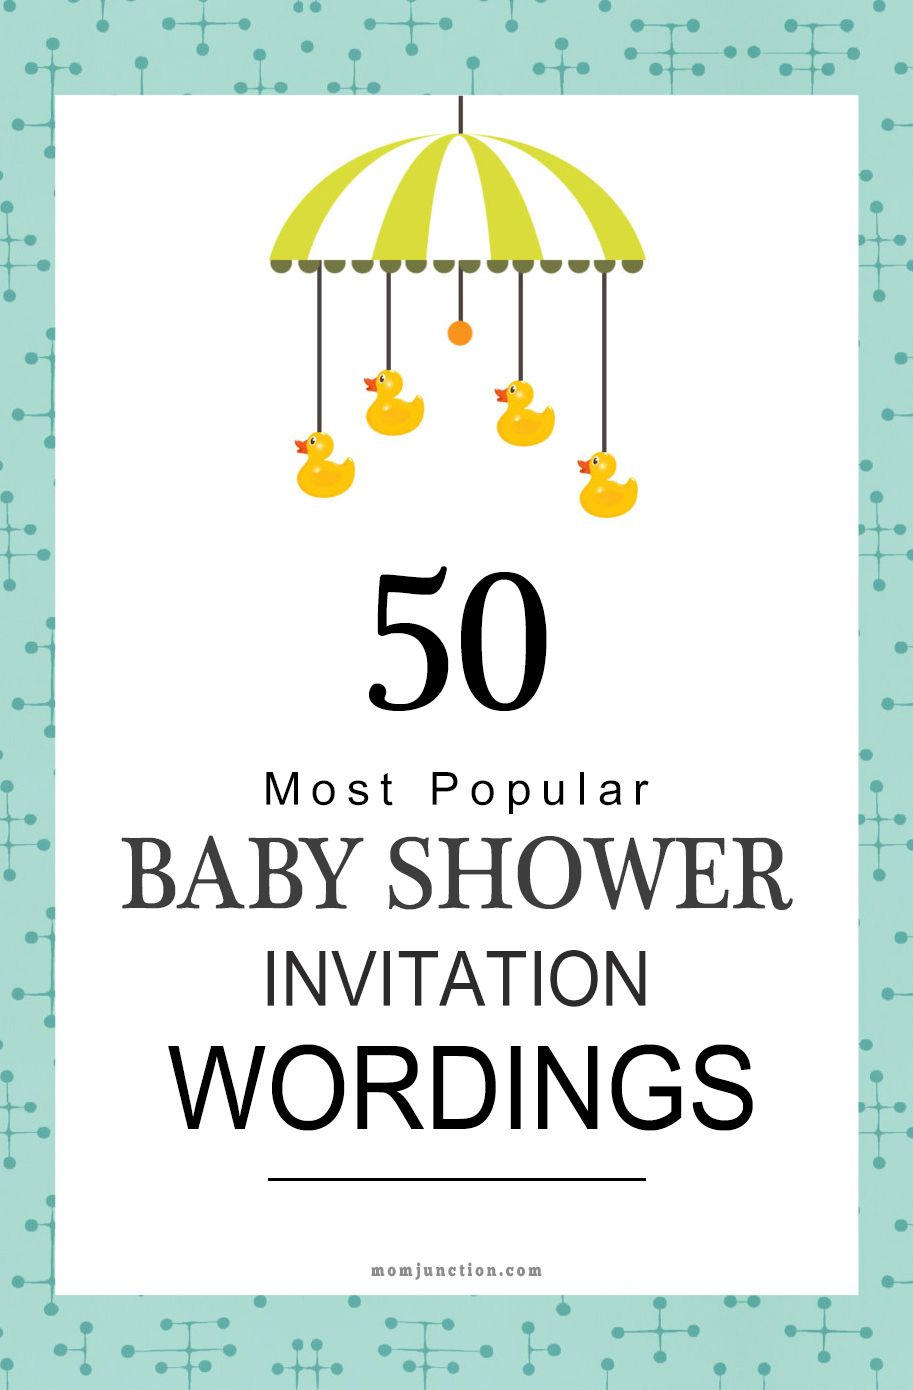 75 most popular baby shower invitation wordings babyshower shower 50 most popular baby shower invitation wordings momjunction will help you find the right words filmwisefo Image collections